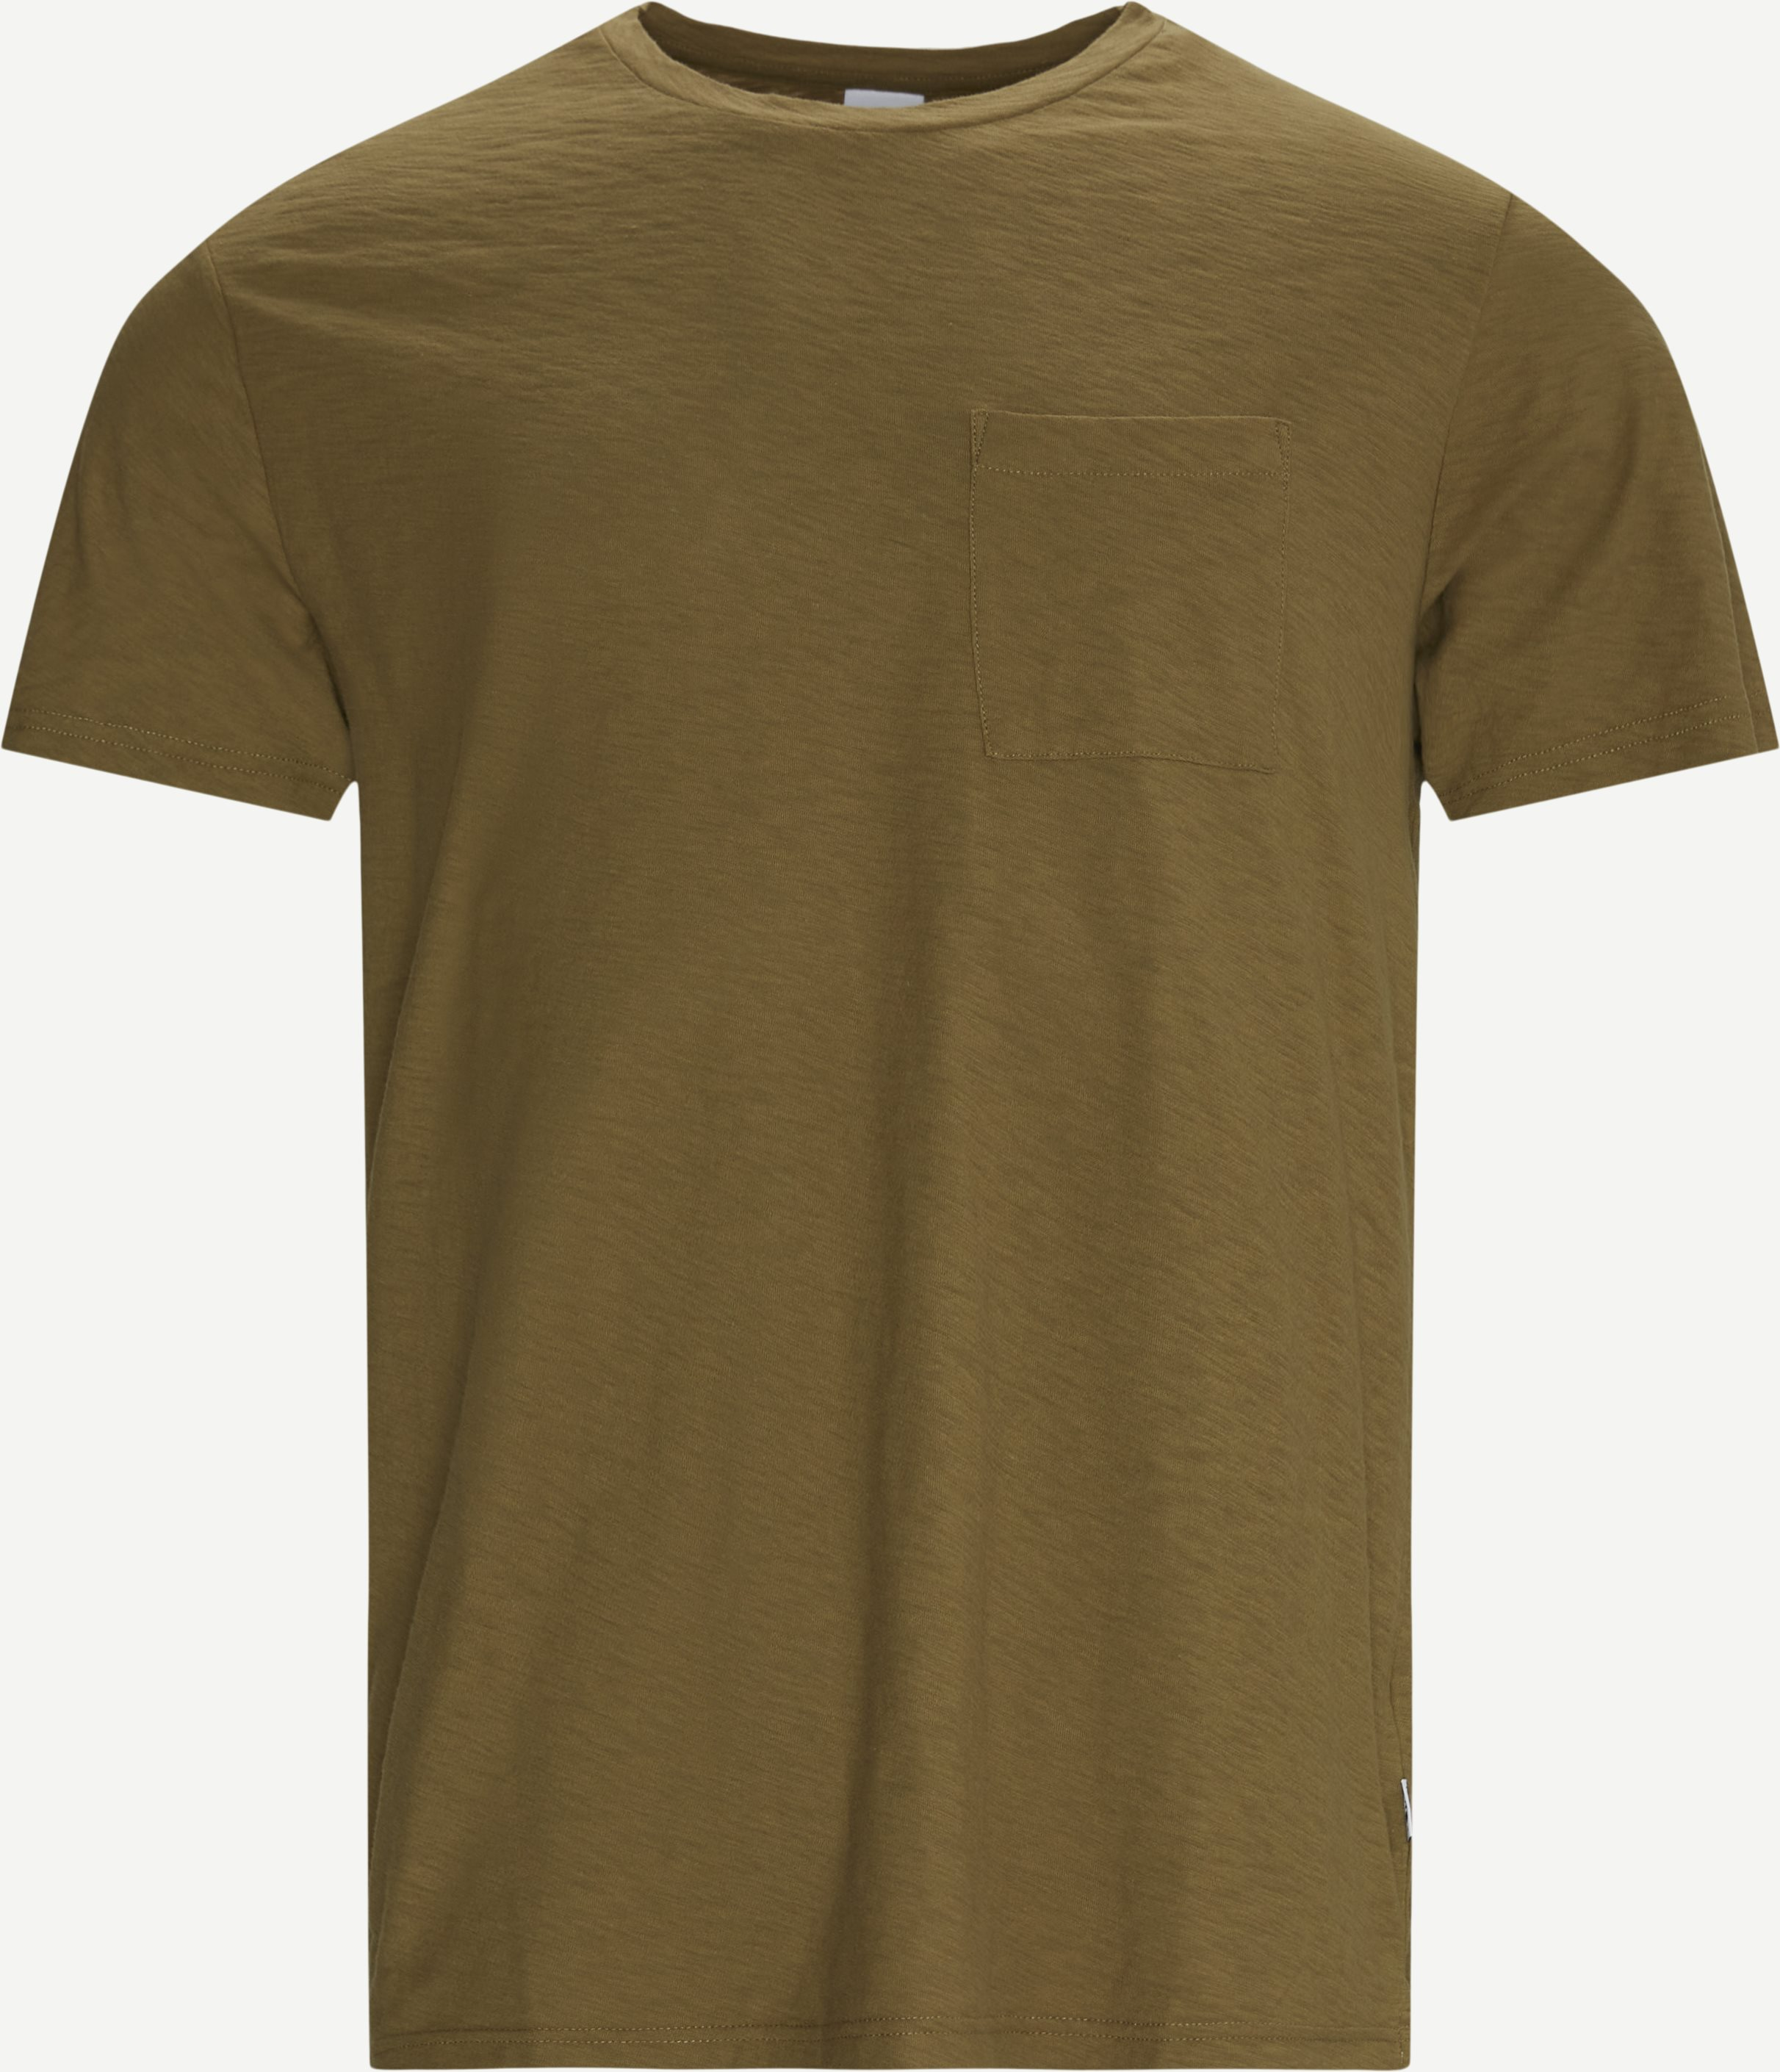 Aspen Tee - T-shirts - Regular - Armé